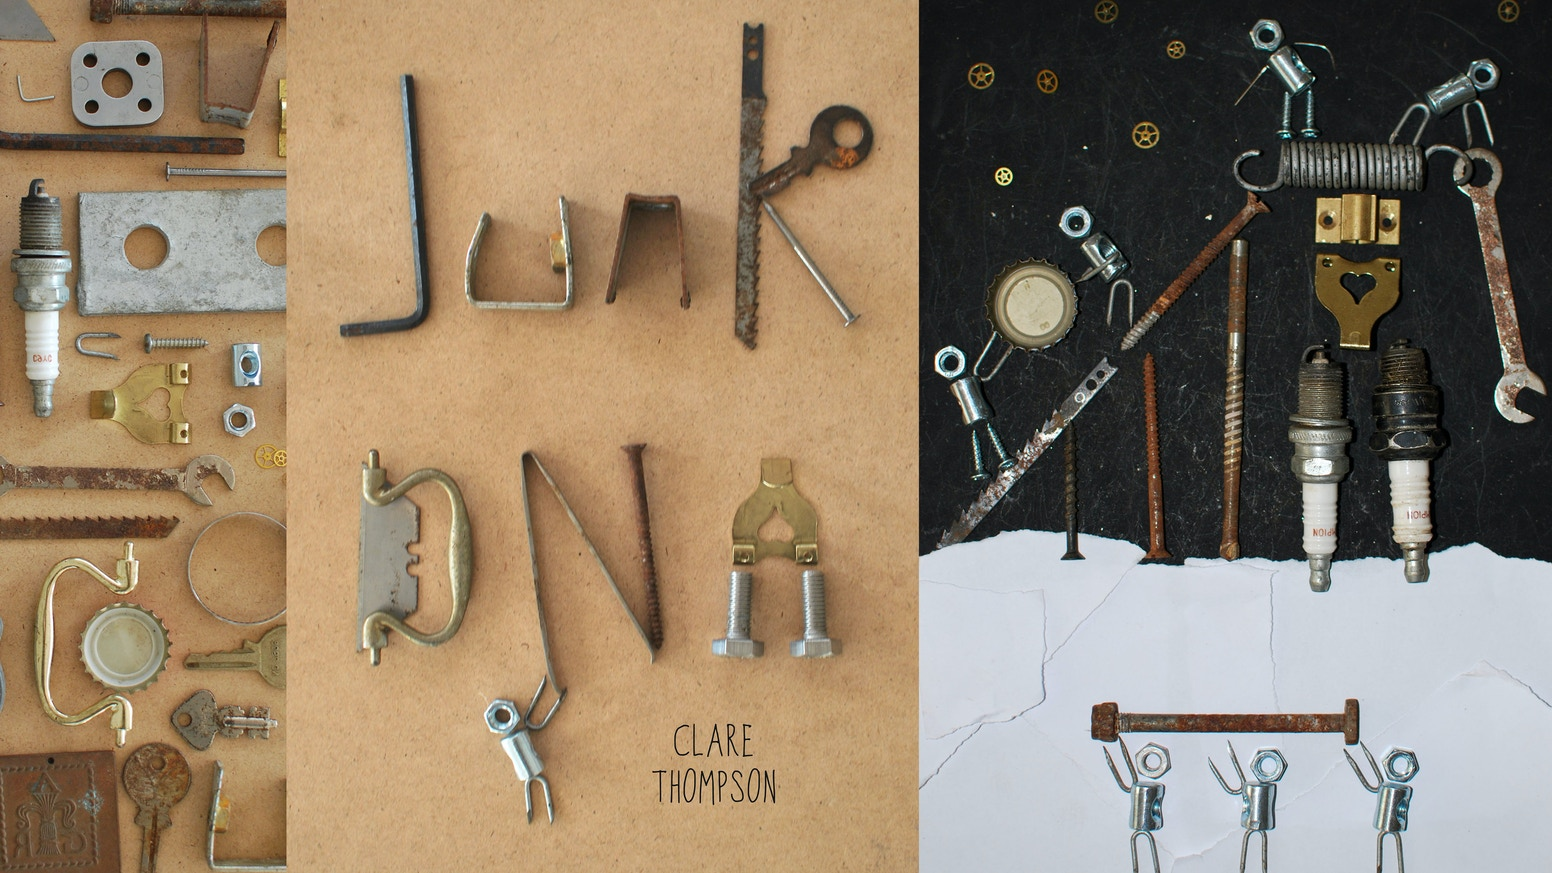 JUNK D.N.A. is a one-shot wordless comic/ picture book with illustrations created entirely from nuts, bolts and scrap metal parts!